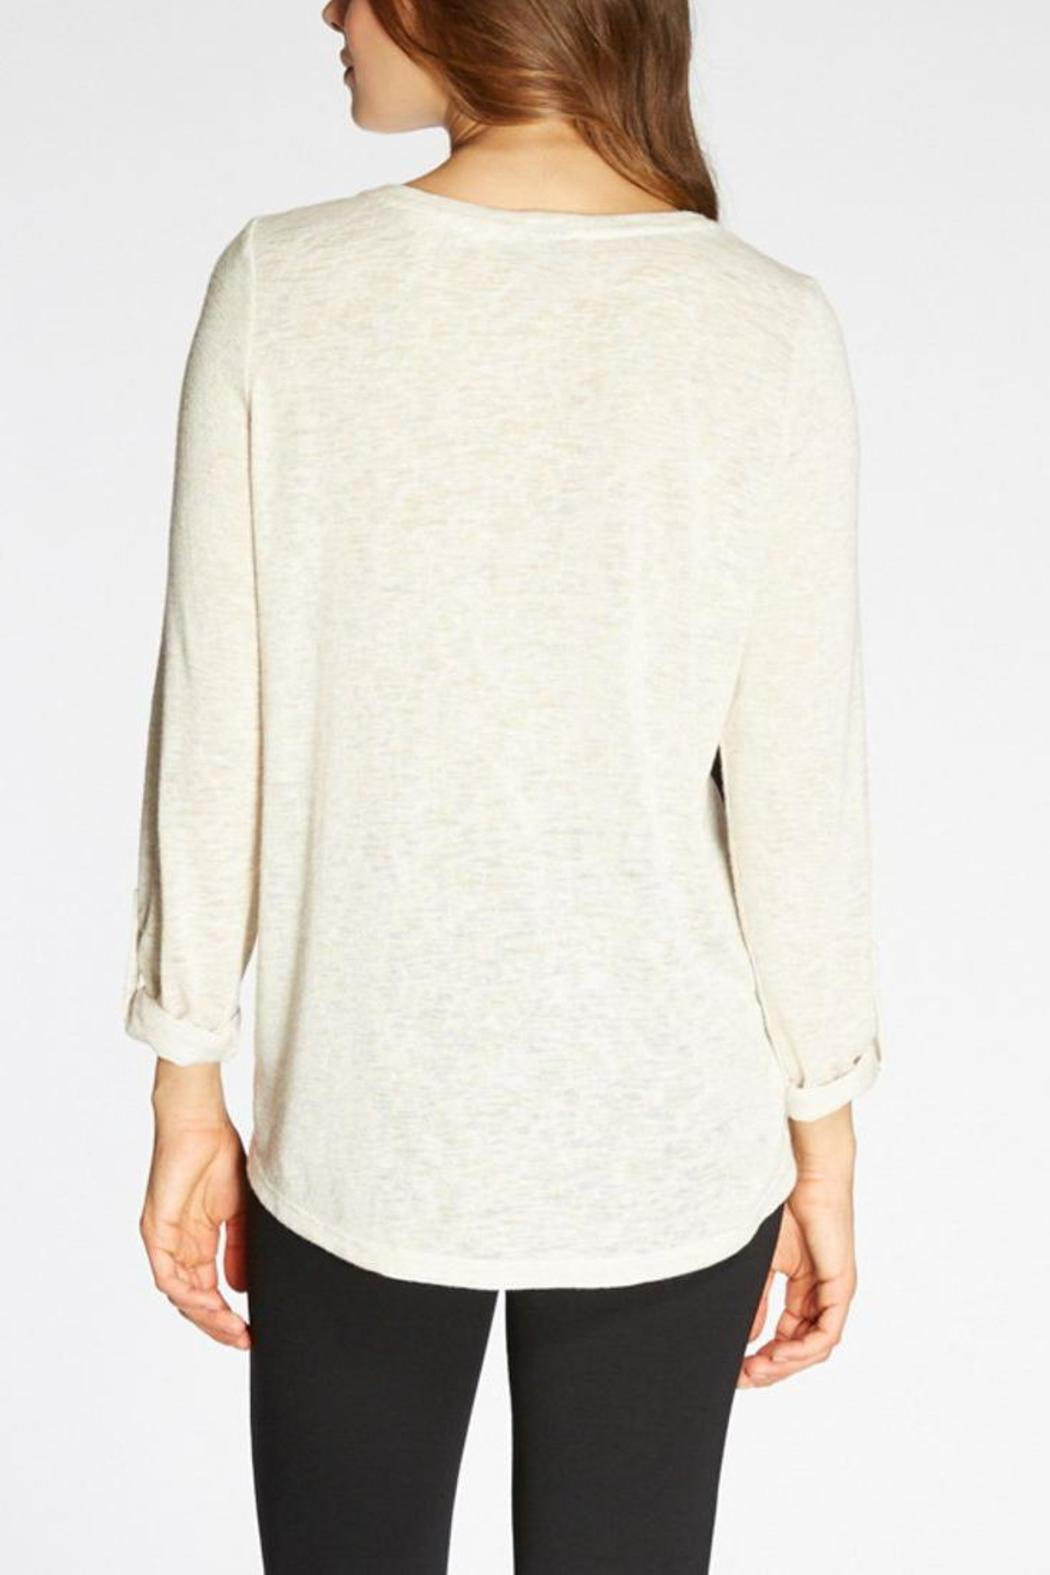 The Dressing Room Abstract Print Top - Front Full Image